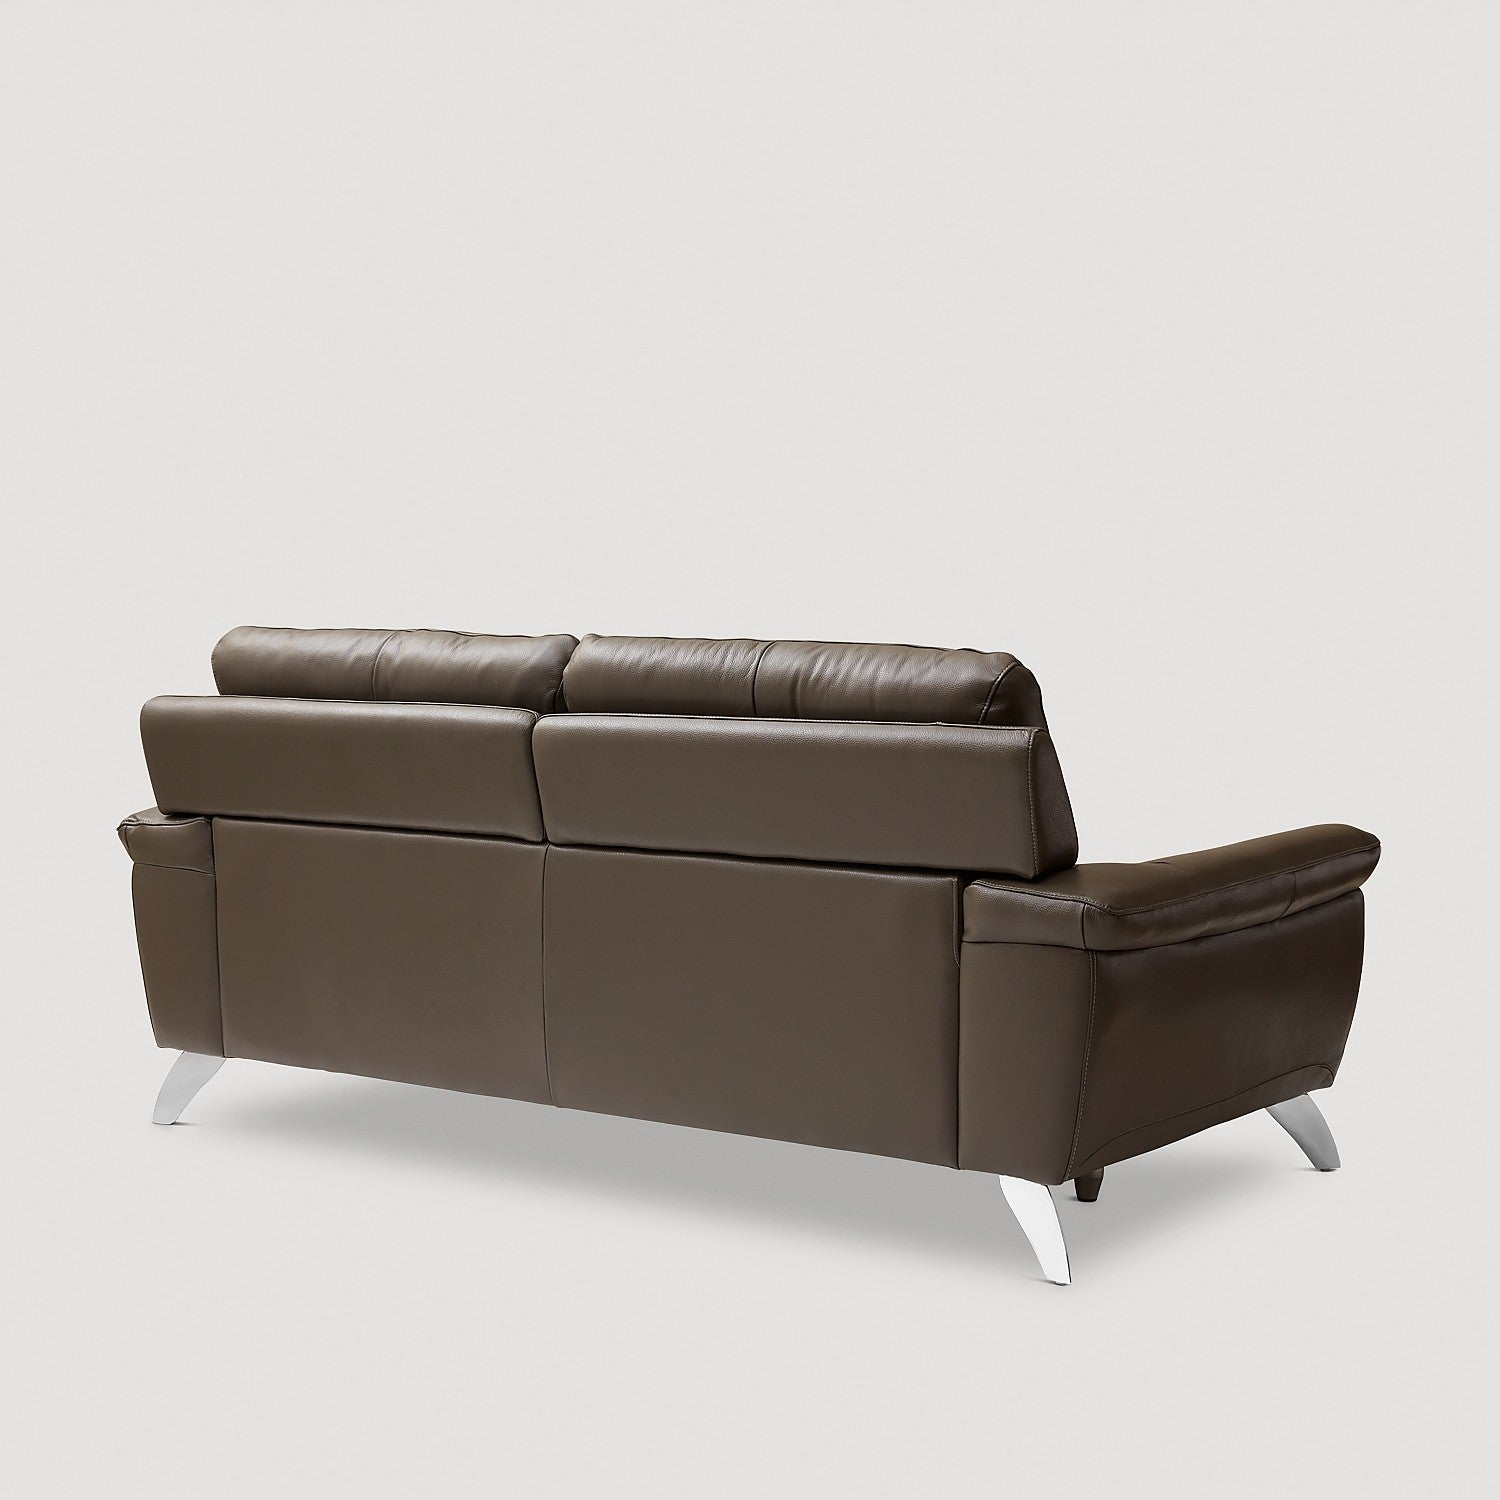 Alexis Leather 3 Seater